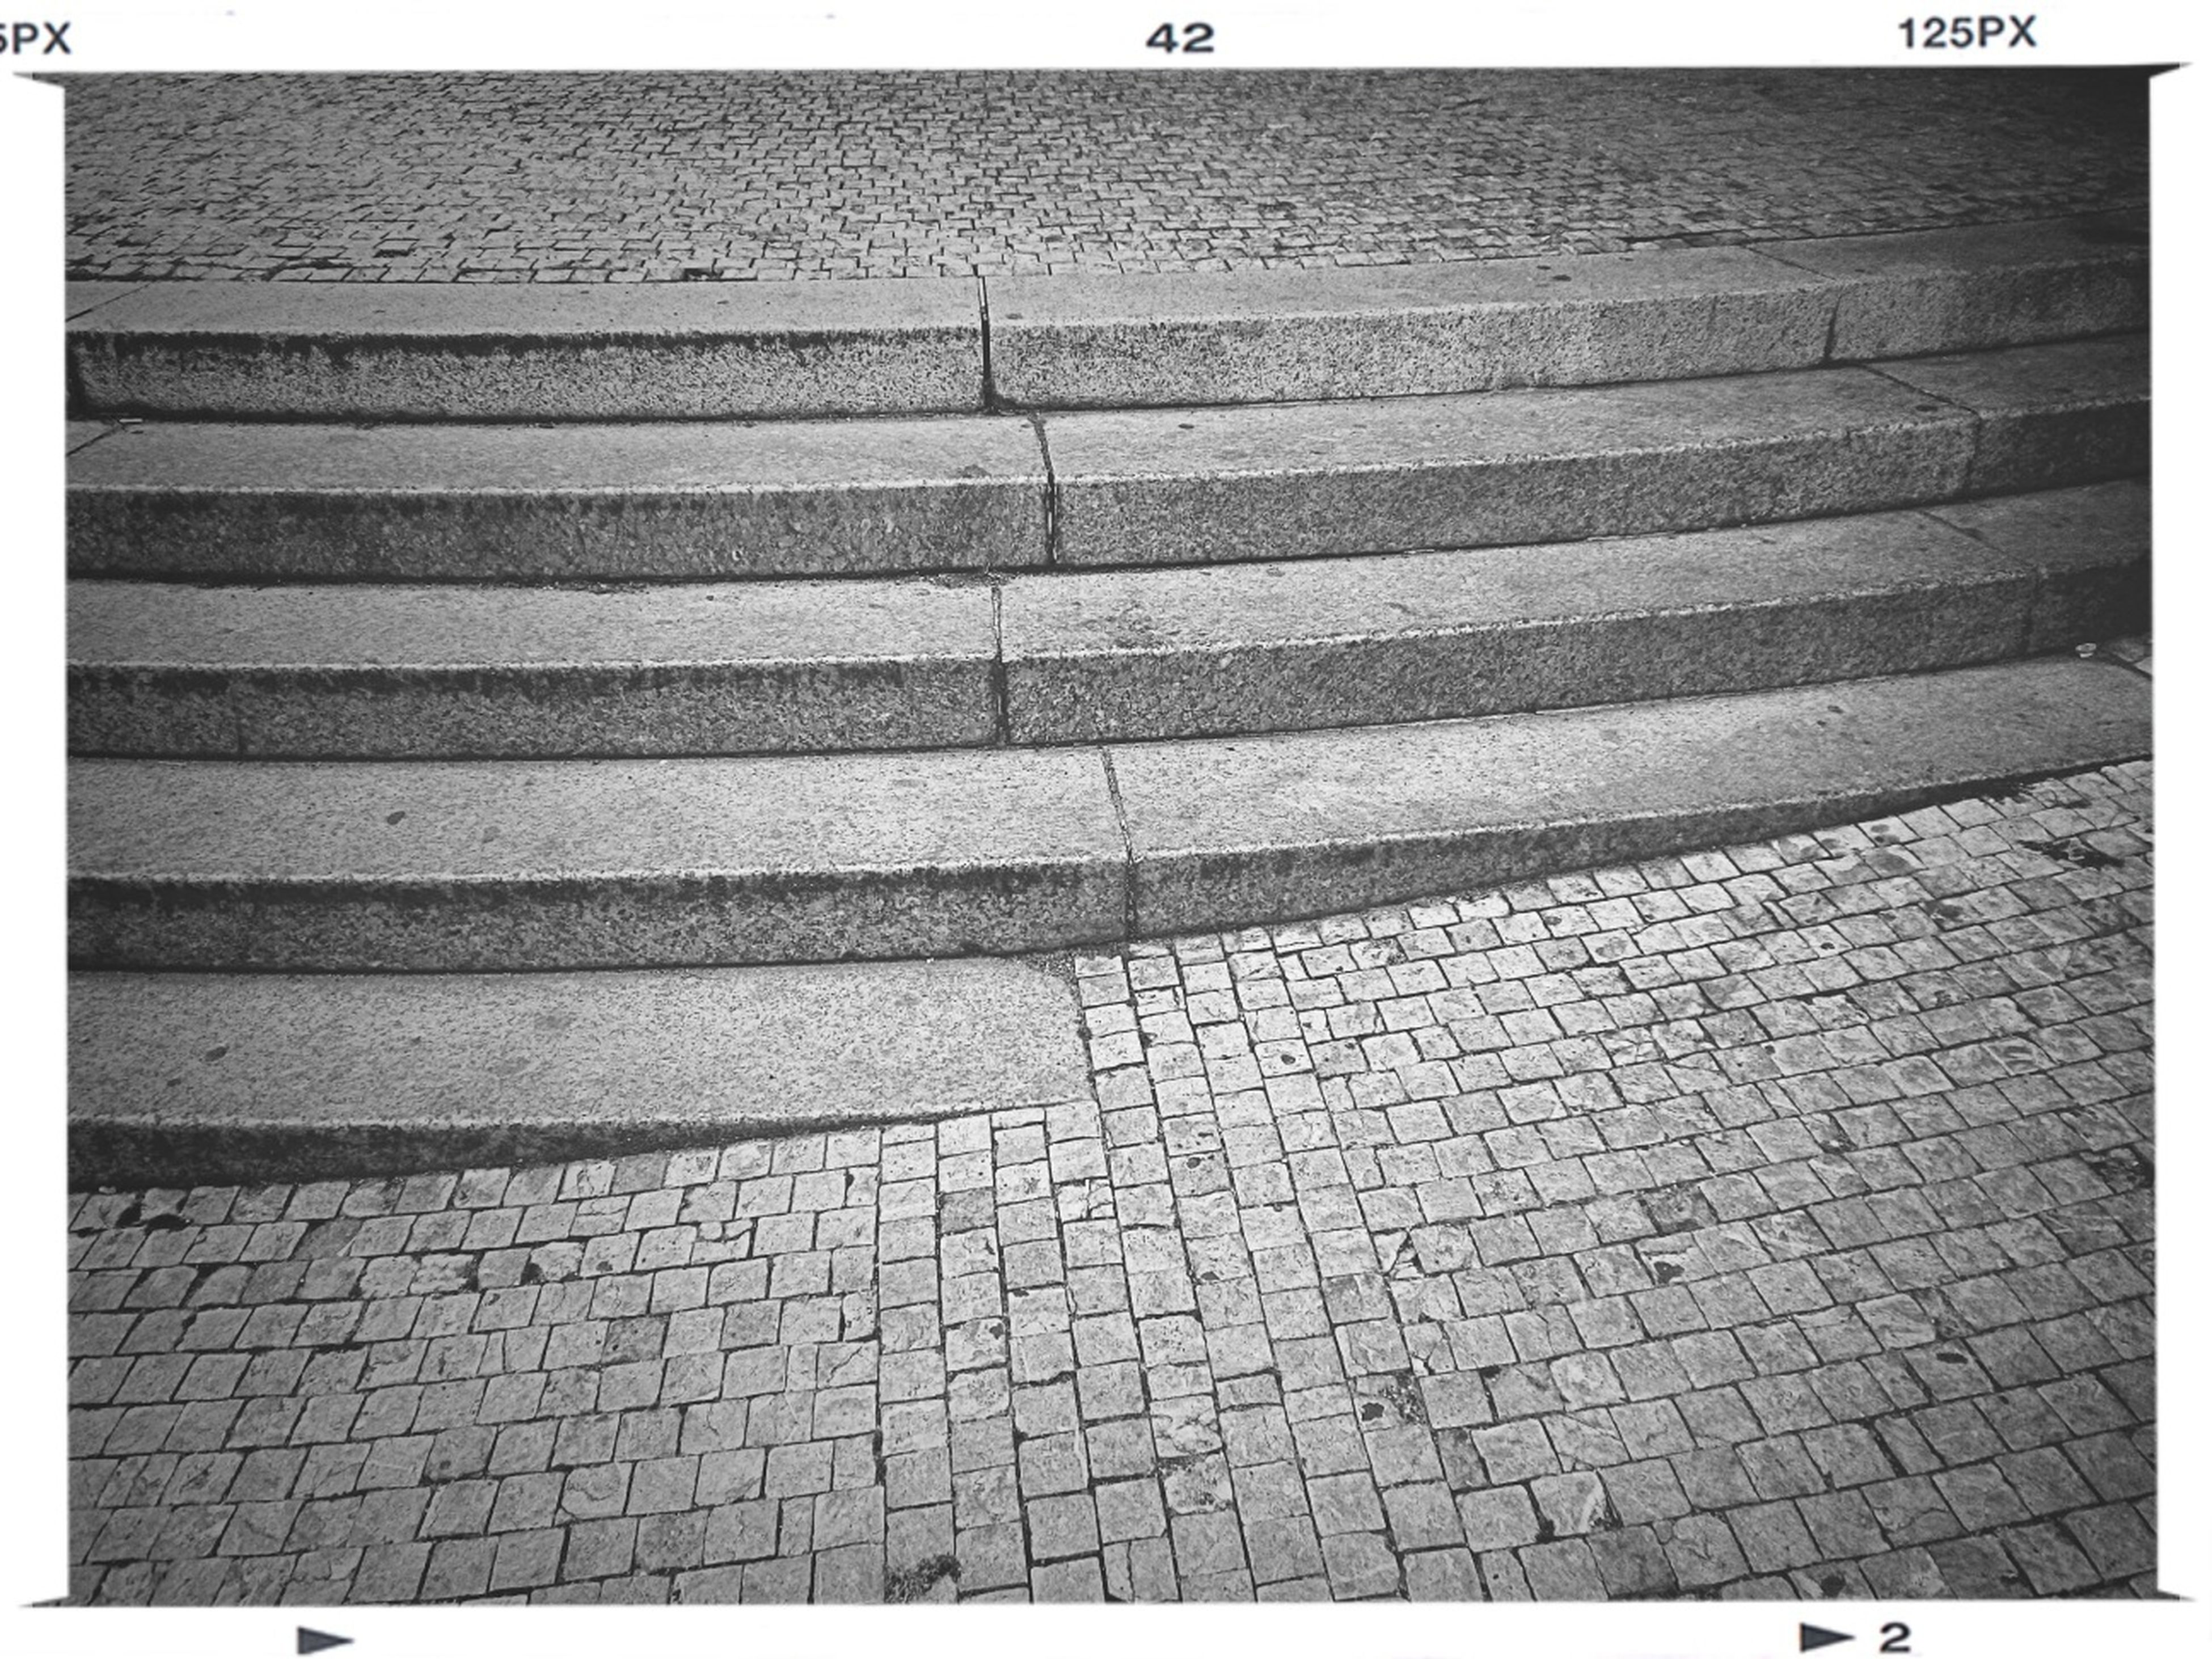 transfer print, auto post production filter, cobblestone, pattern, paving stone, textured, street, full frame, sidewalk, footpath, outdoors, day, backgrounds, high angle view, the way forward, no people, sunlight, pavement, road marking, wall - building feature